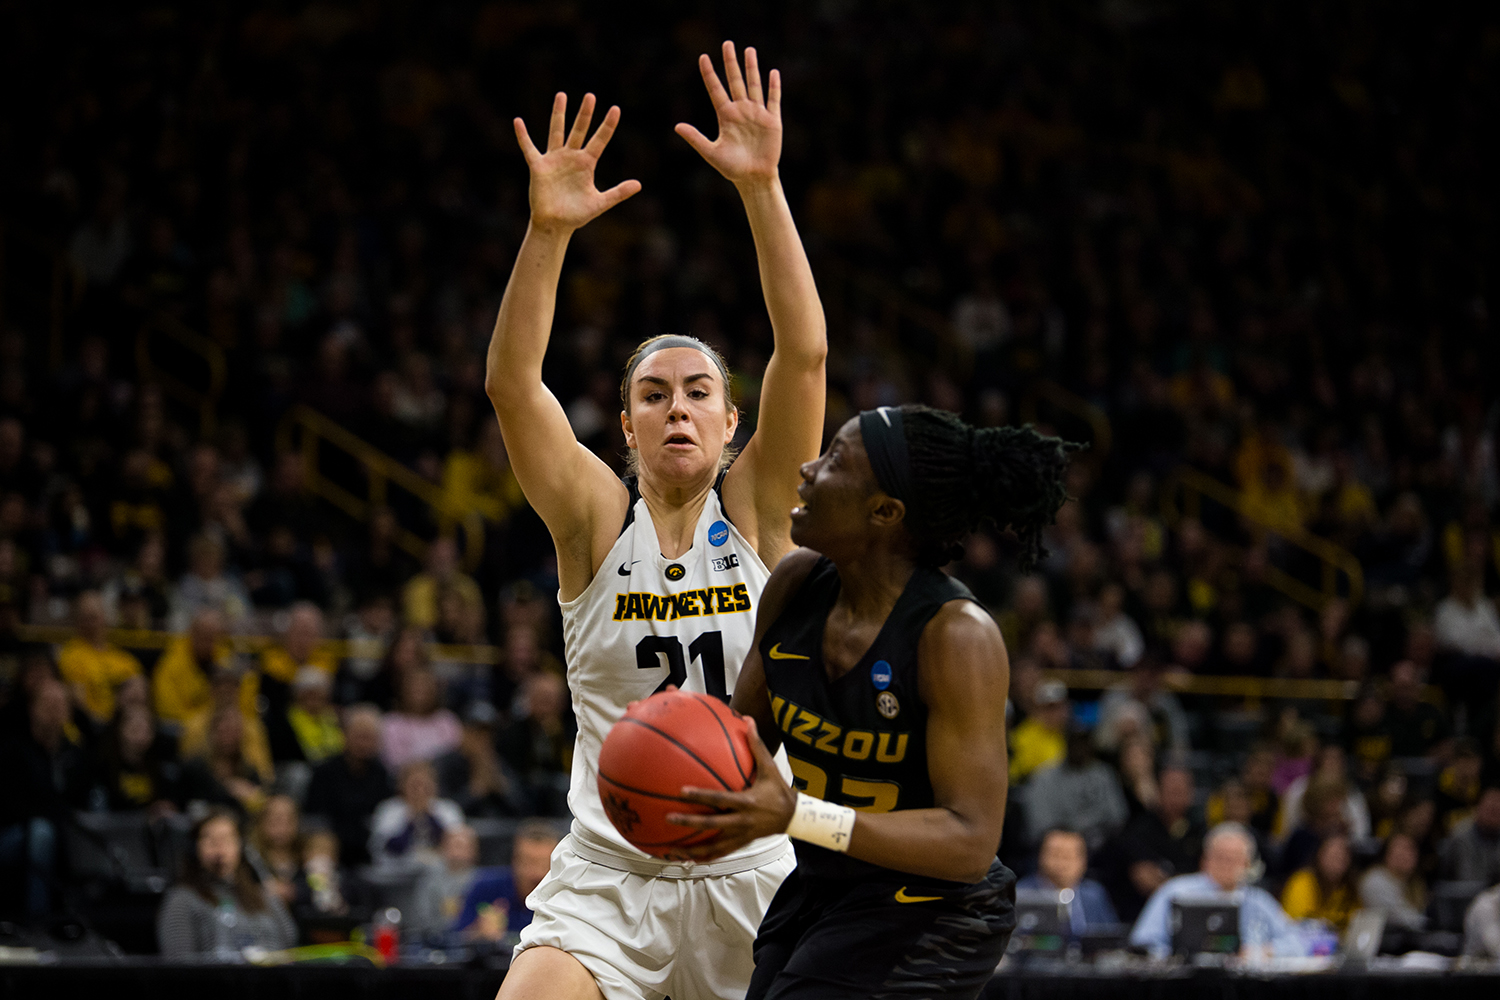 Iowa+forward+Hannah+Stewart+%2821%29+attempts+to+block+a+shot+during+the+Iowa%2FMissouri+NCAA+Tournament+second+round+women%E2%80%99s+basketball+game+in+Carver-Hawkeye+Arena+in+Iowa+City%2C+Iowa+on+Sunday%2C+March+24%2C+2019.+The+Hawkeyes+defeated+the+Tigers+68-52.